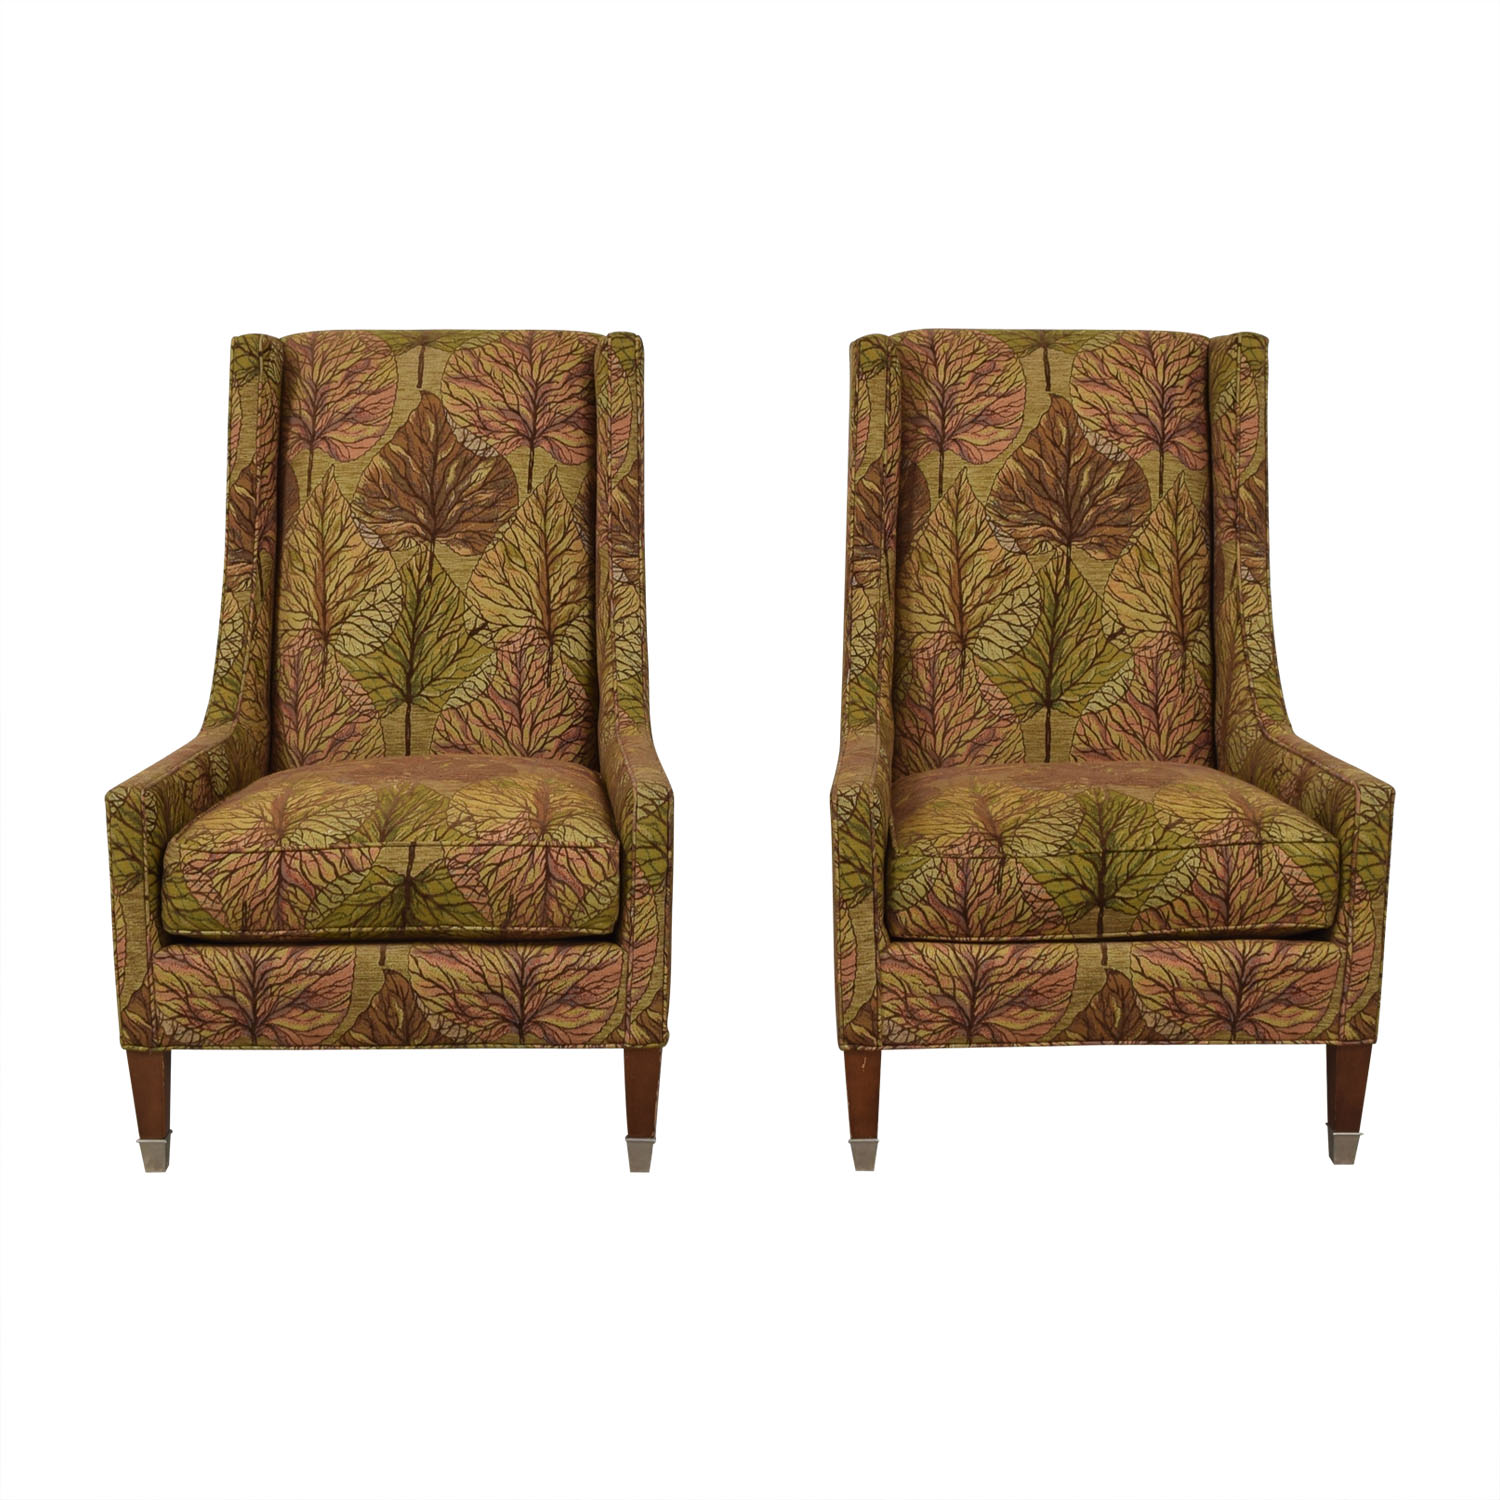 buy Kravet Furniture Multi-Colored Upholstered High Back Chairs Kravet